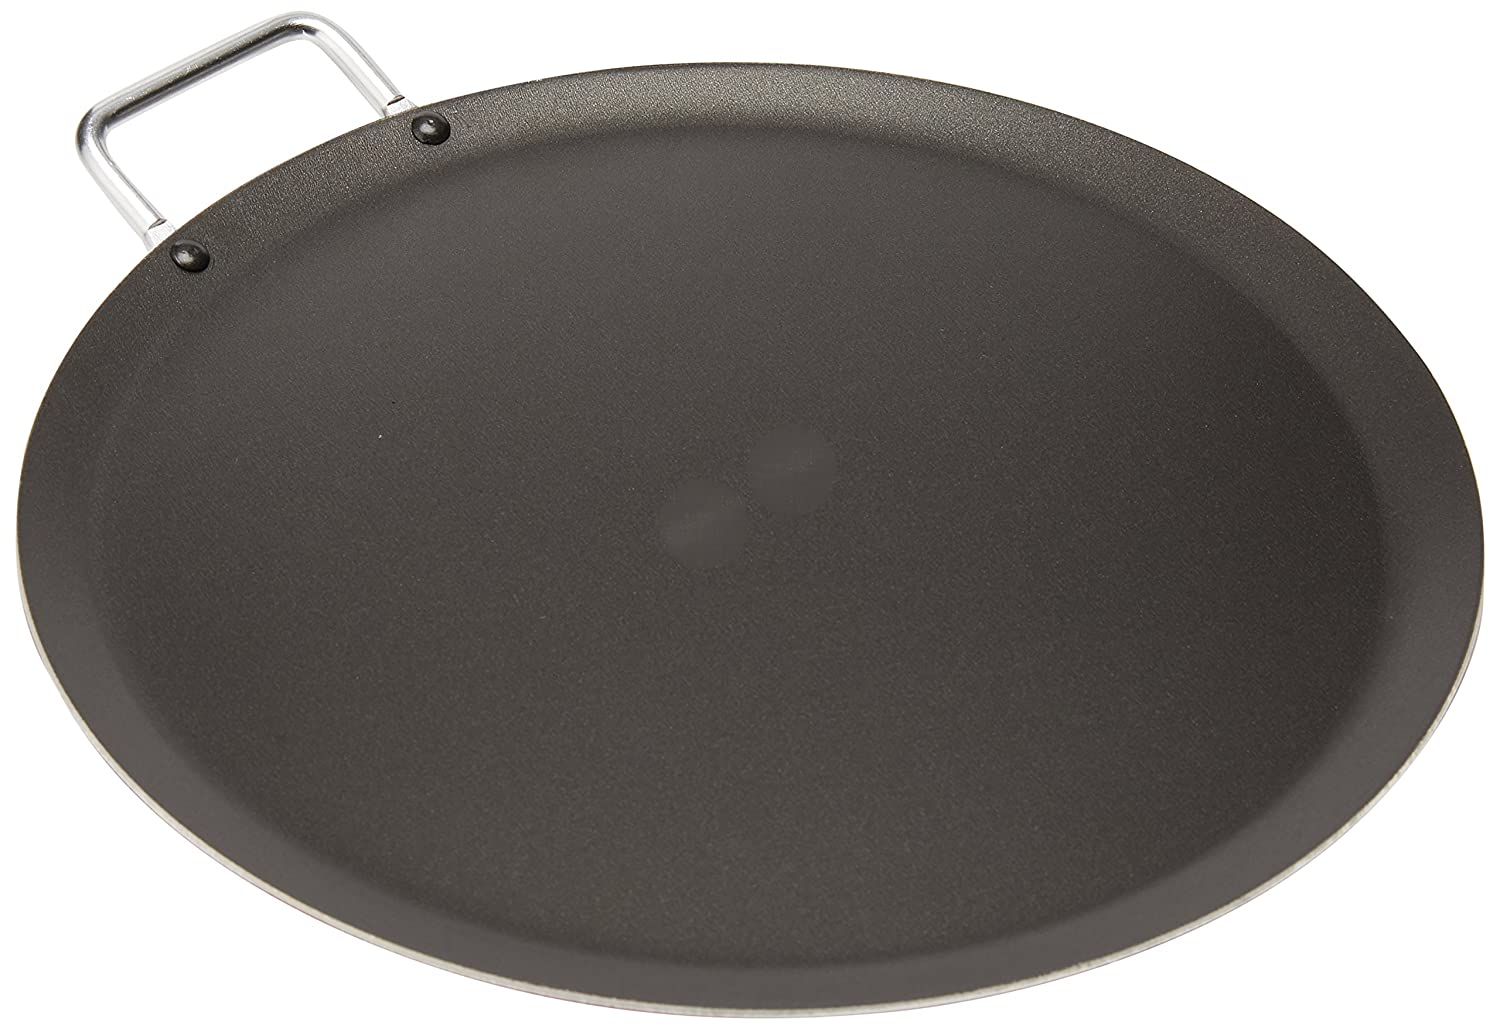 Amazon.com: vasconia 4021172 10.2-inch Griddle, mediano ...